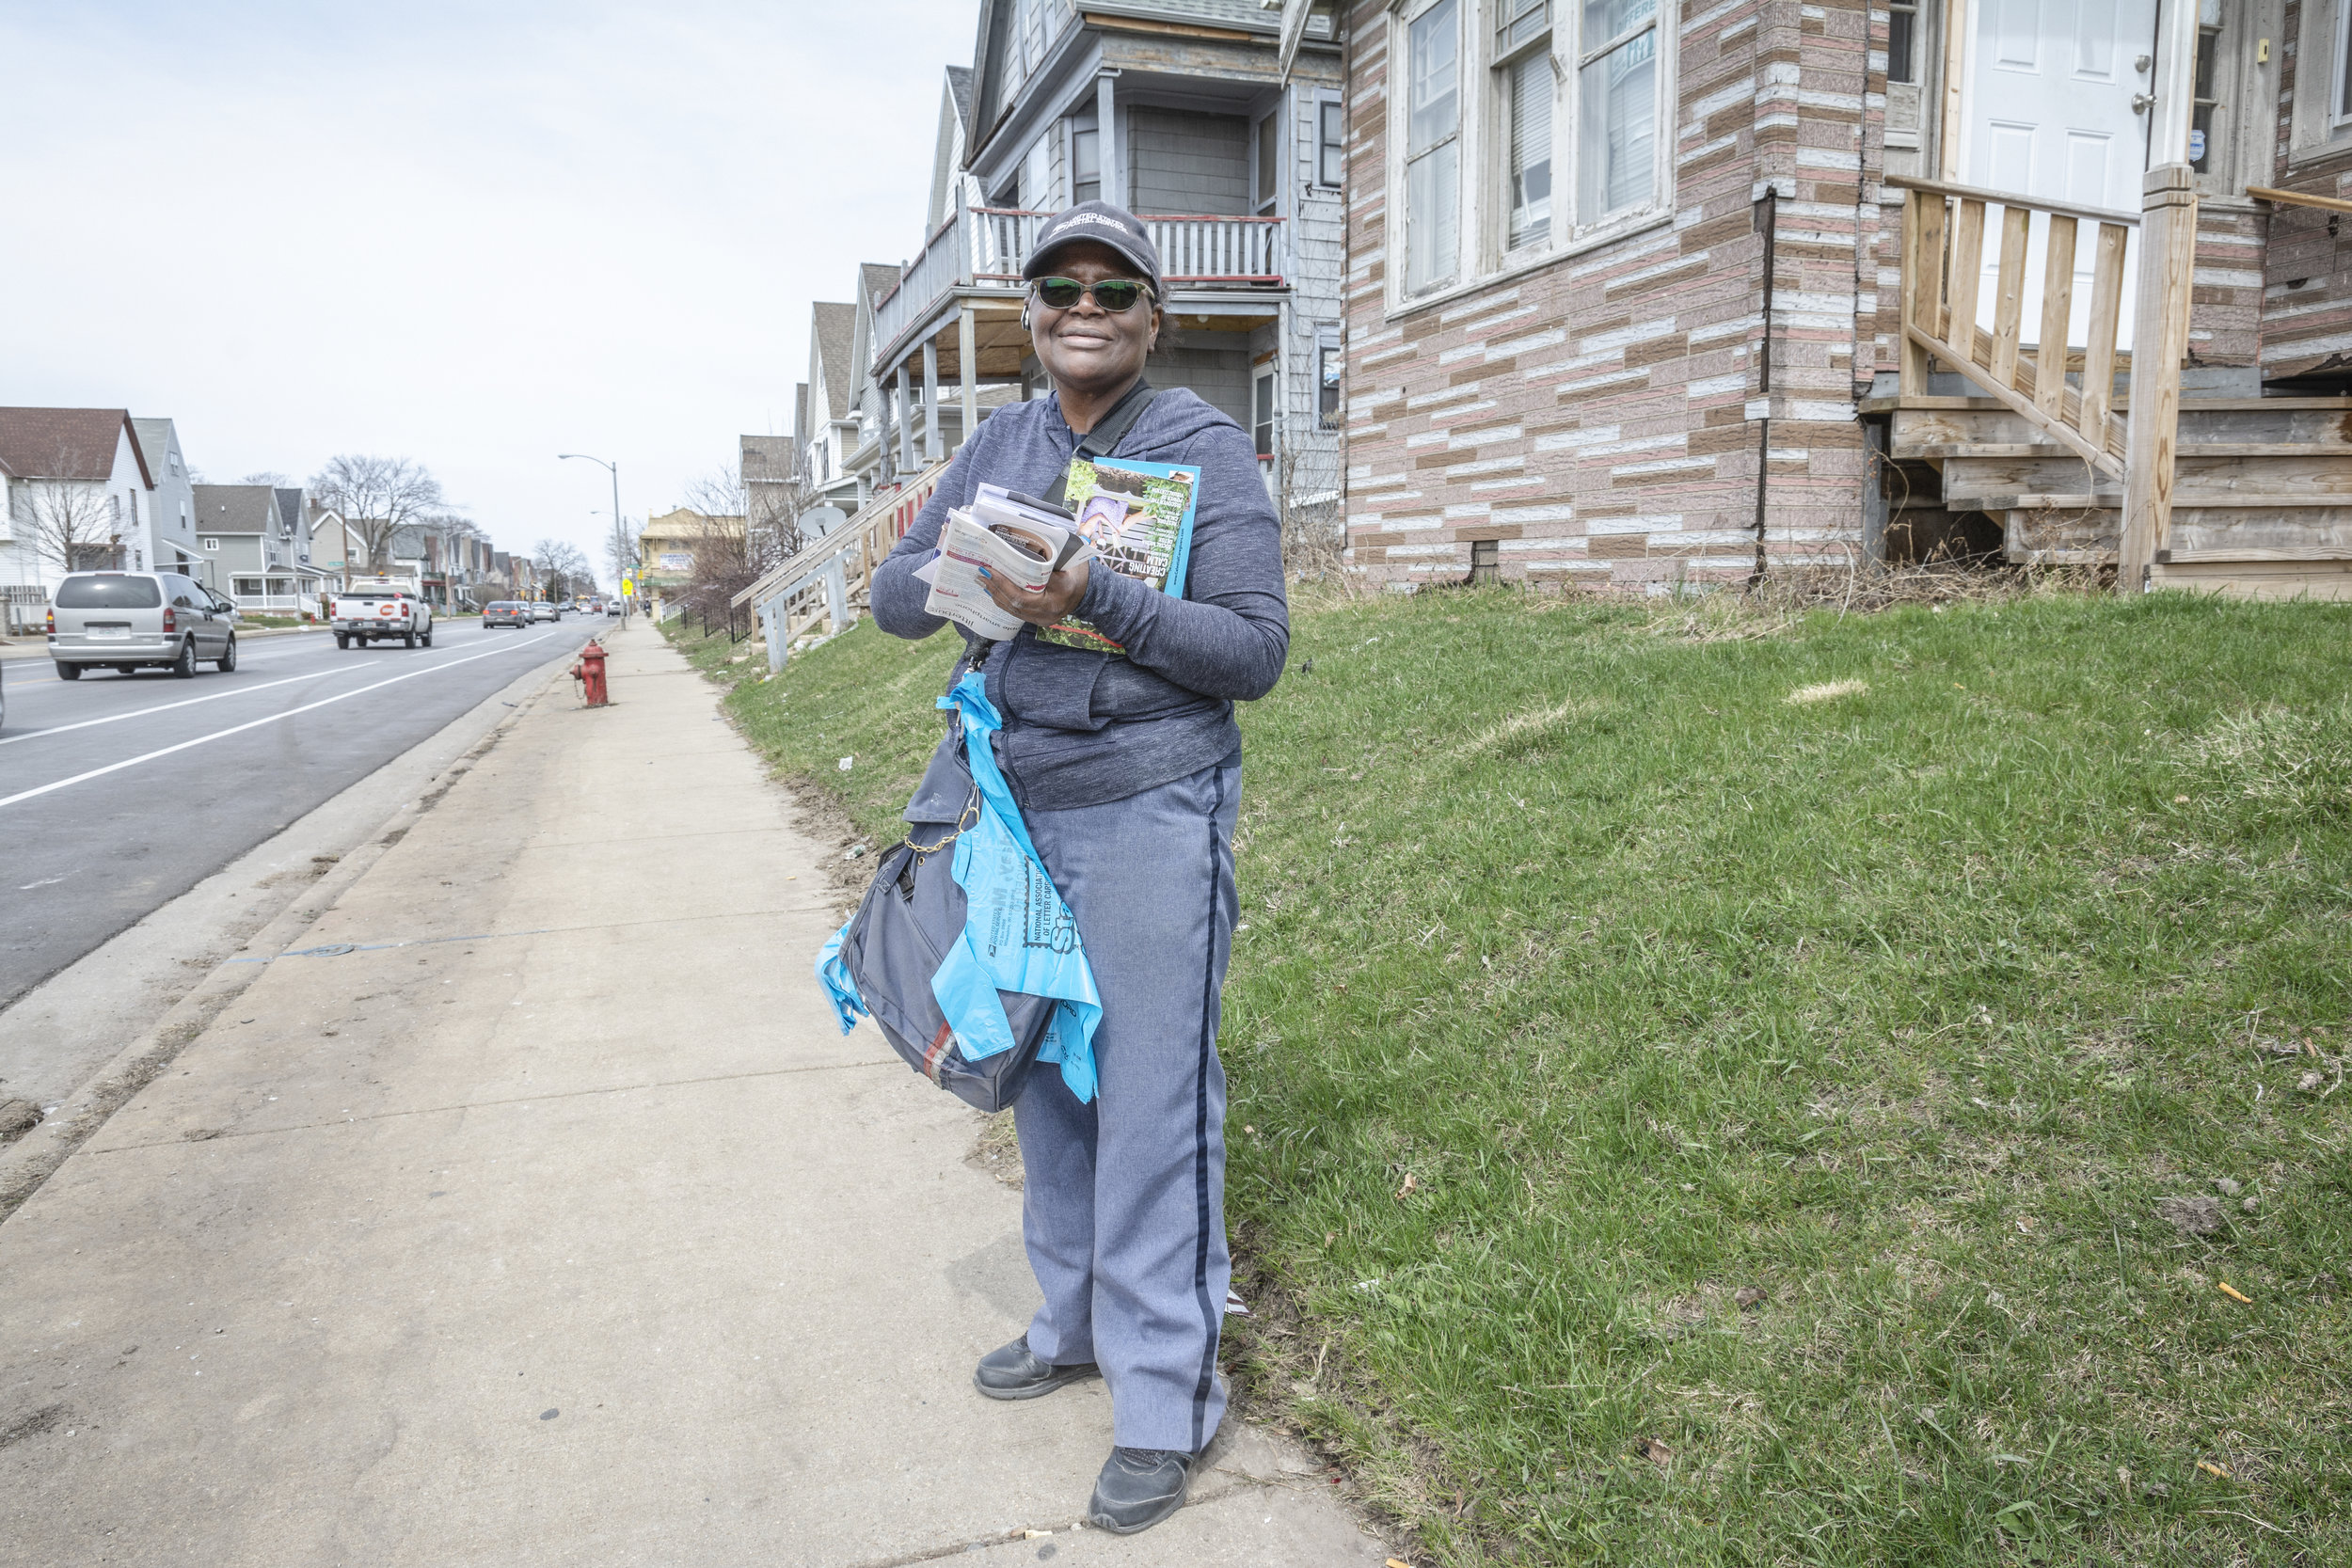 Cheryl has been an inner city postal carrier for five years. I asked her how much territory she covered. She got out her smartphone and showed me. The device counts her steps. She averages around 27,000 steps a day. I figured that to be about one foot per step. That means she walks over five miles a day along cracked sidewalks, potholed streets and warped porch steps, carrying that mail pouch.